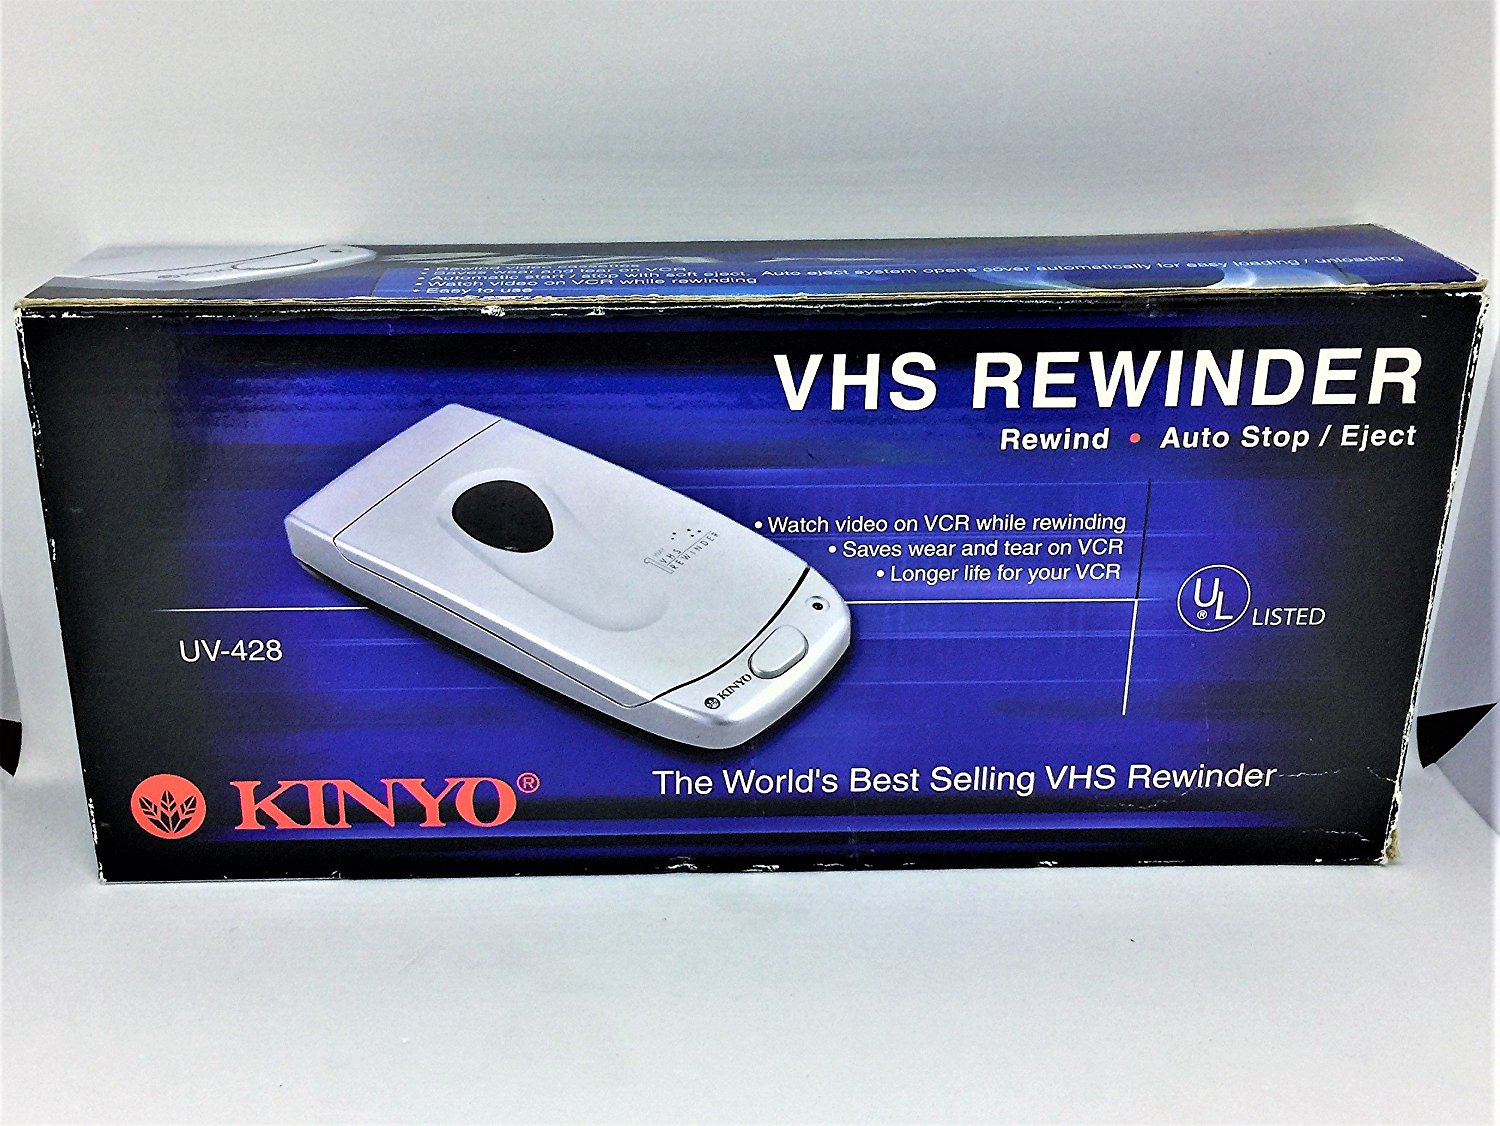 A blast from the past: Kinyo 1-way VHS Rewinder UV-428